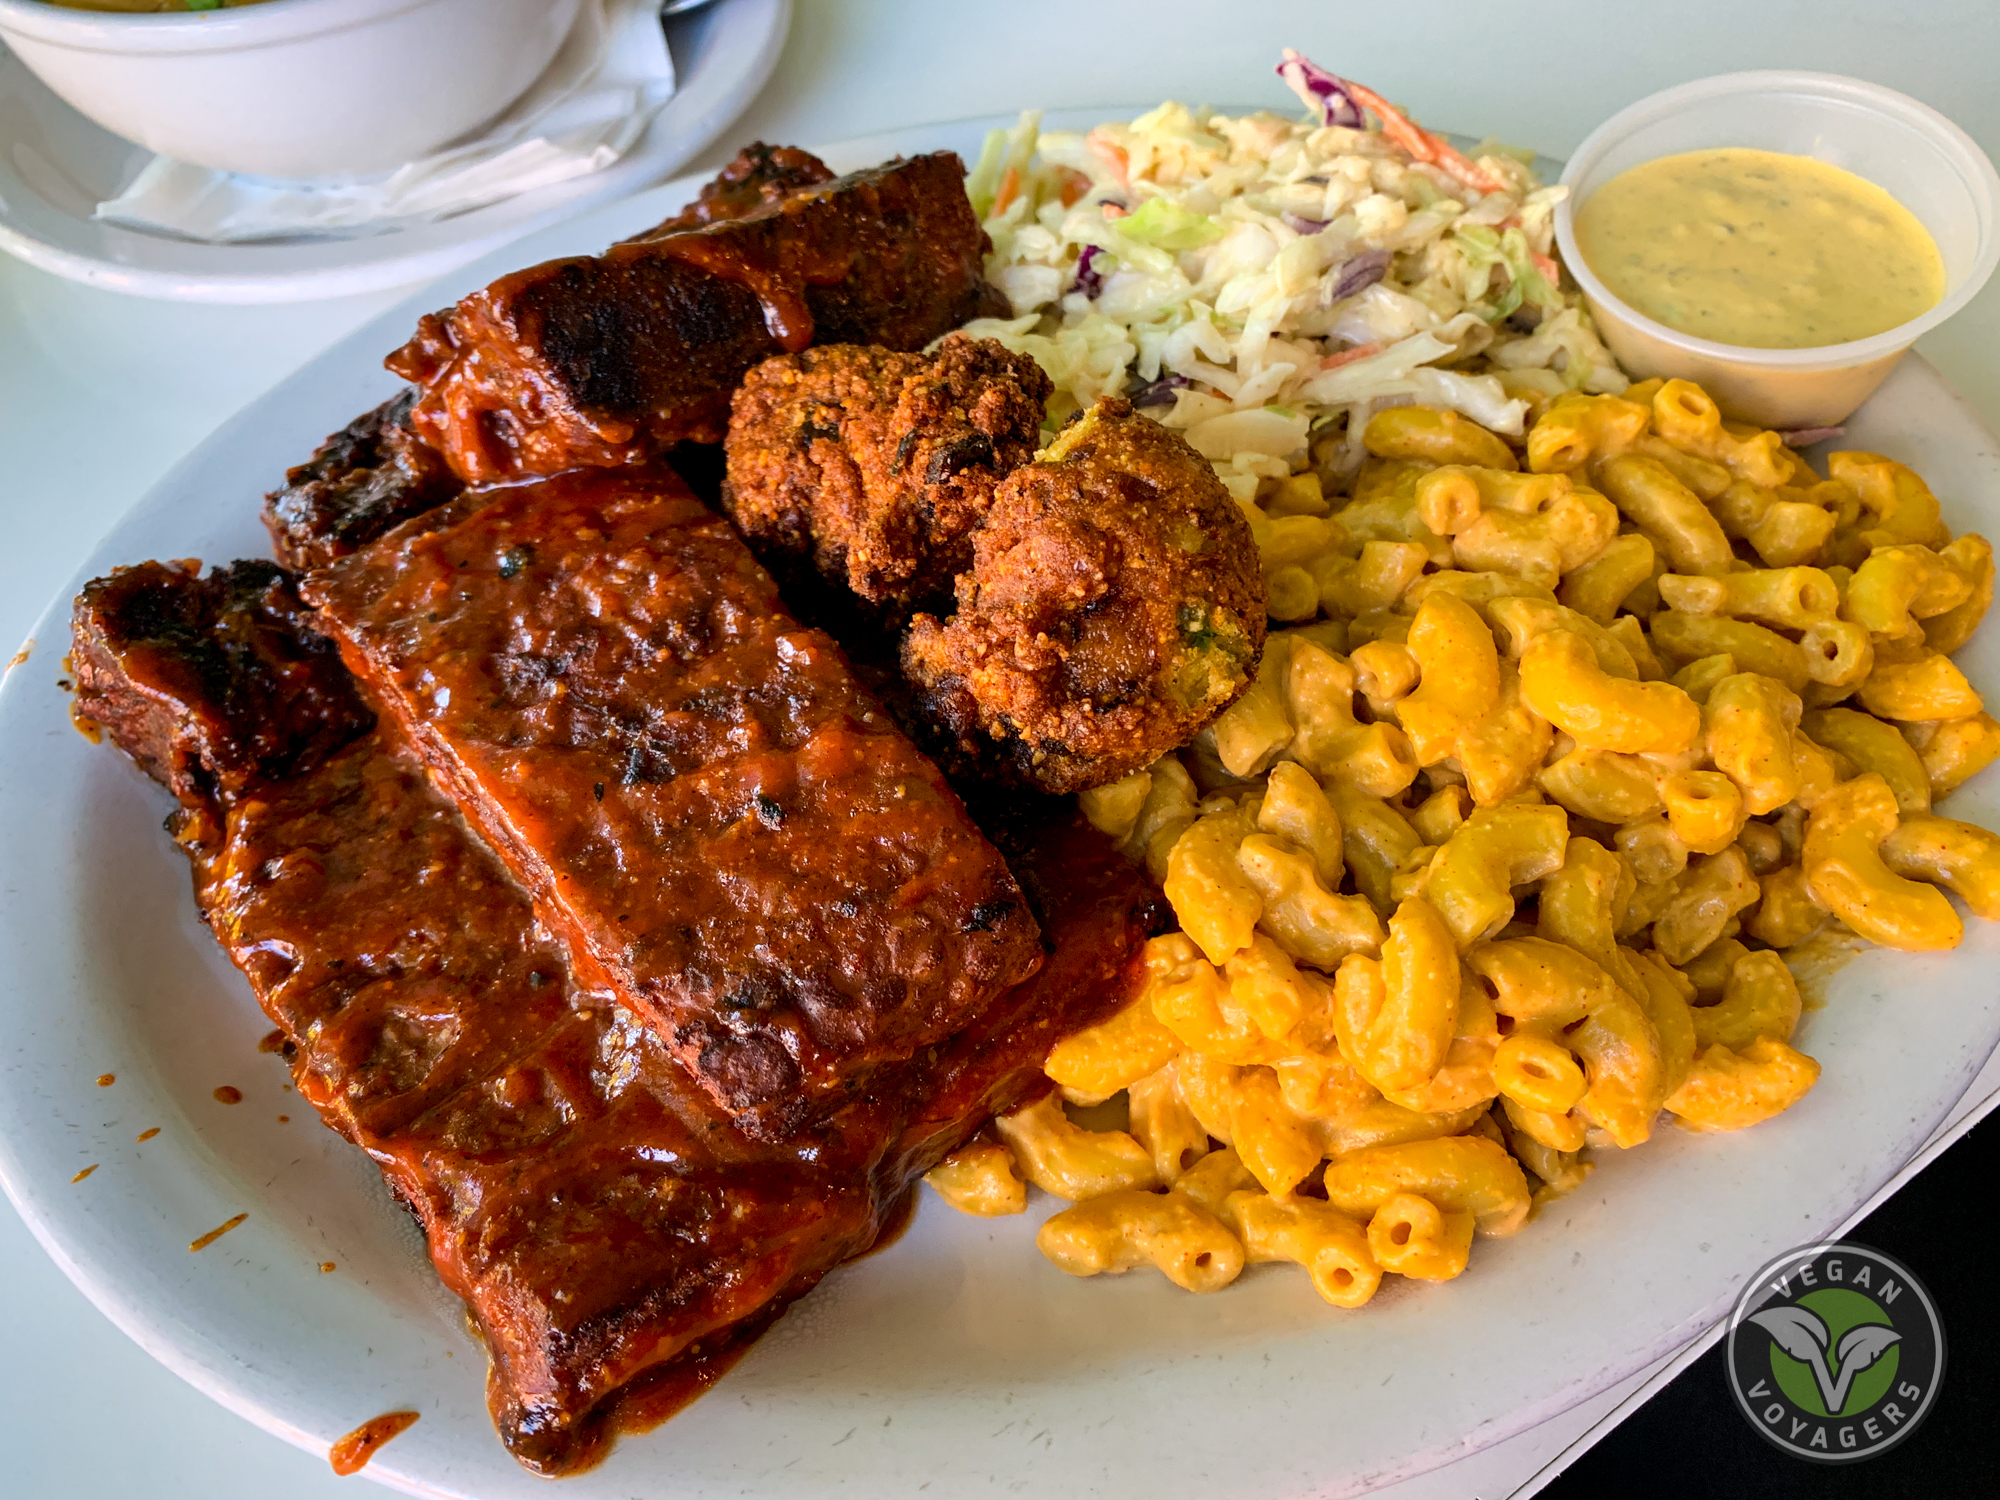 Barbeque | Homegrown Smoker | The Ultimate Vegan Guide to Portland, OR